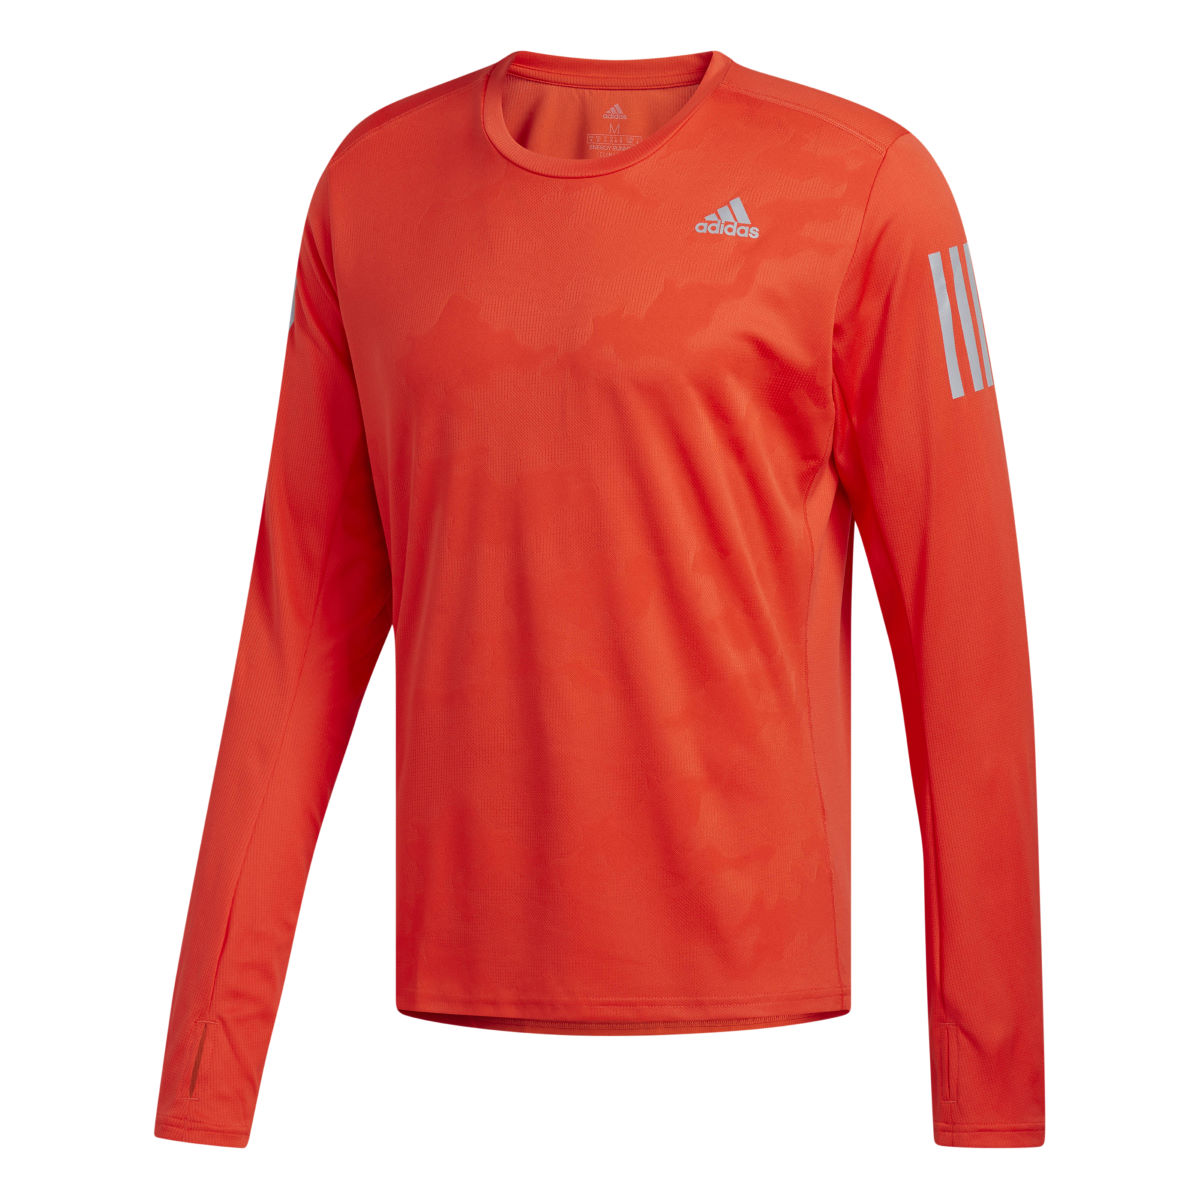 Maillot adidas Response (manches longues, PE17) - Extra Extra Large